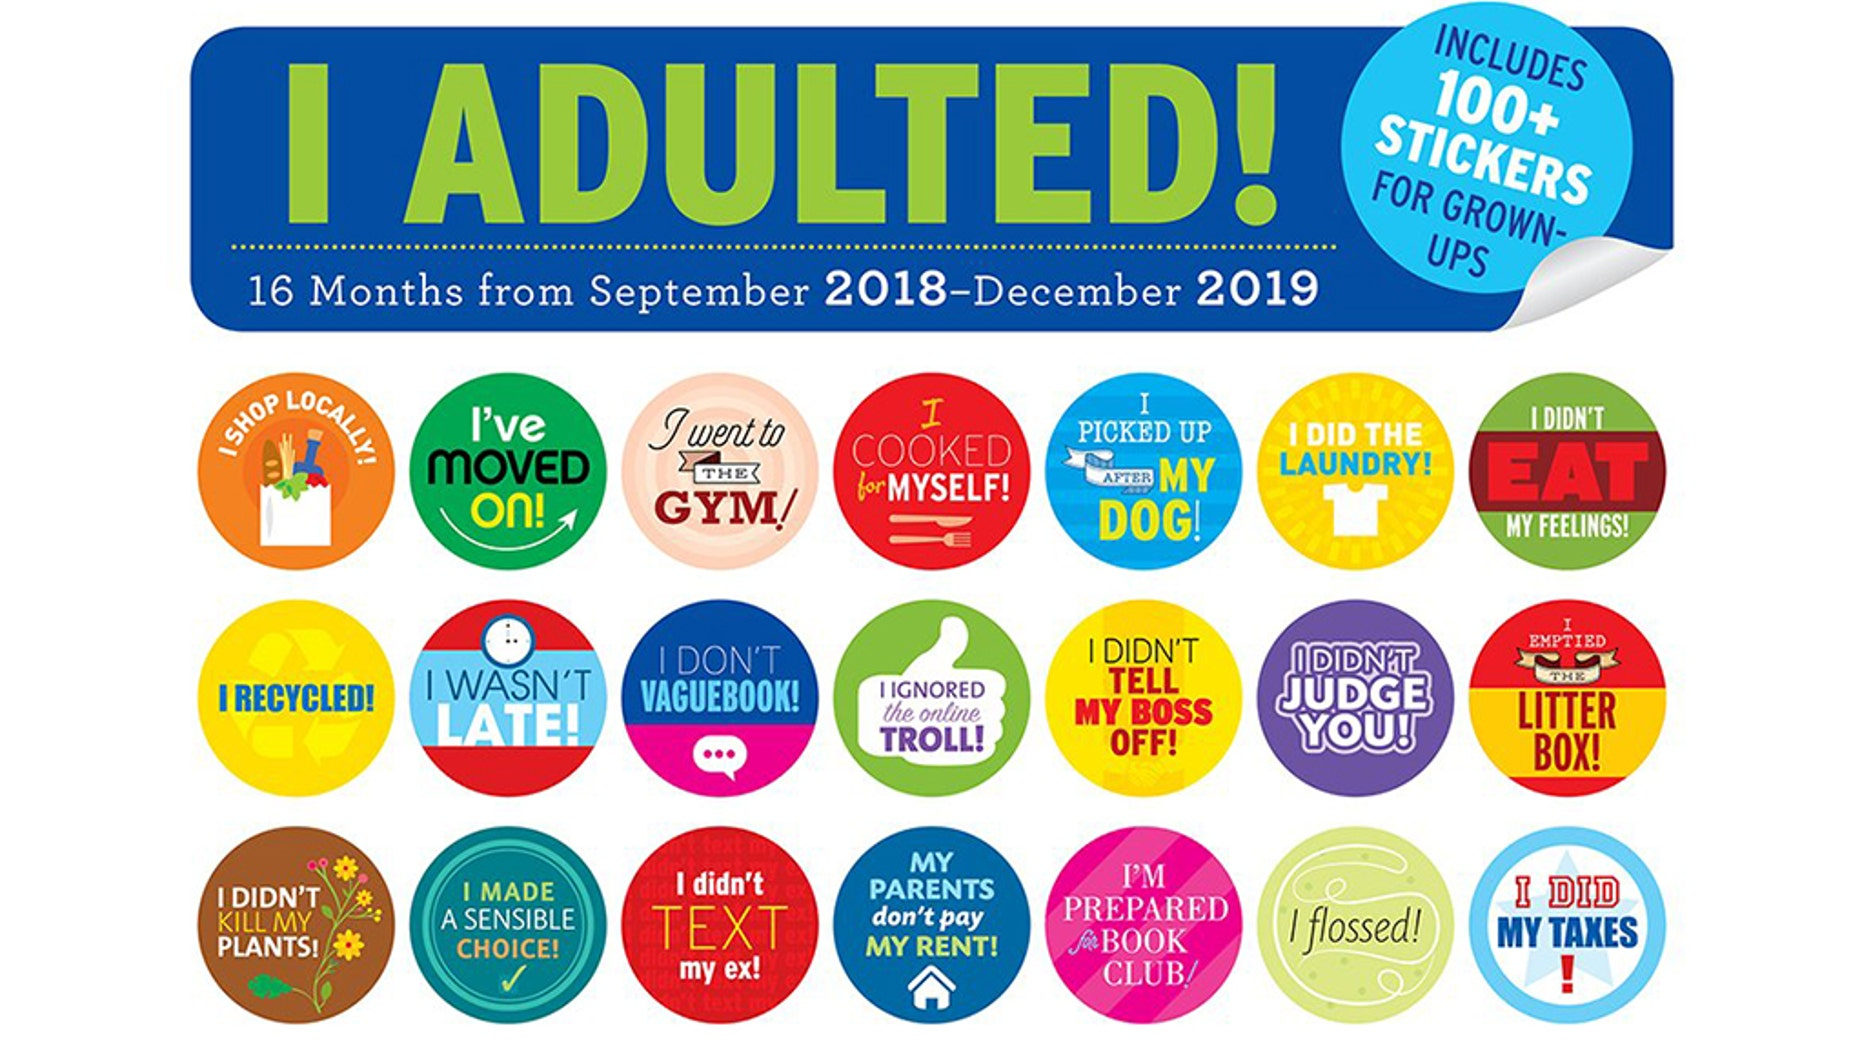 Adulting' calendar rewards grown-ups with stickers for